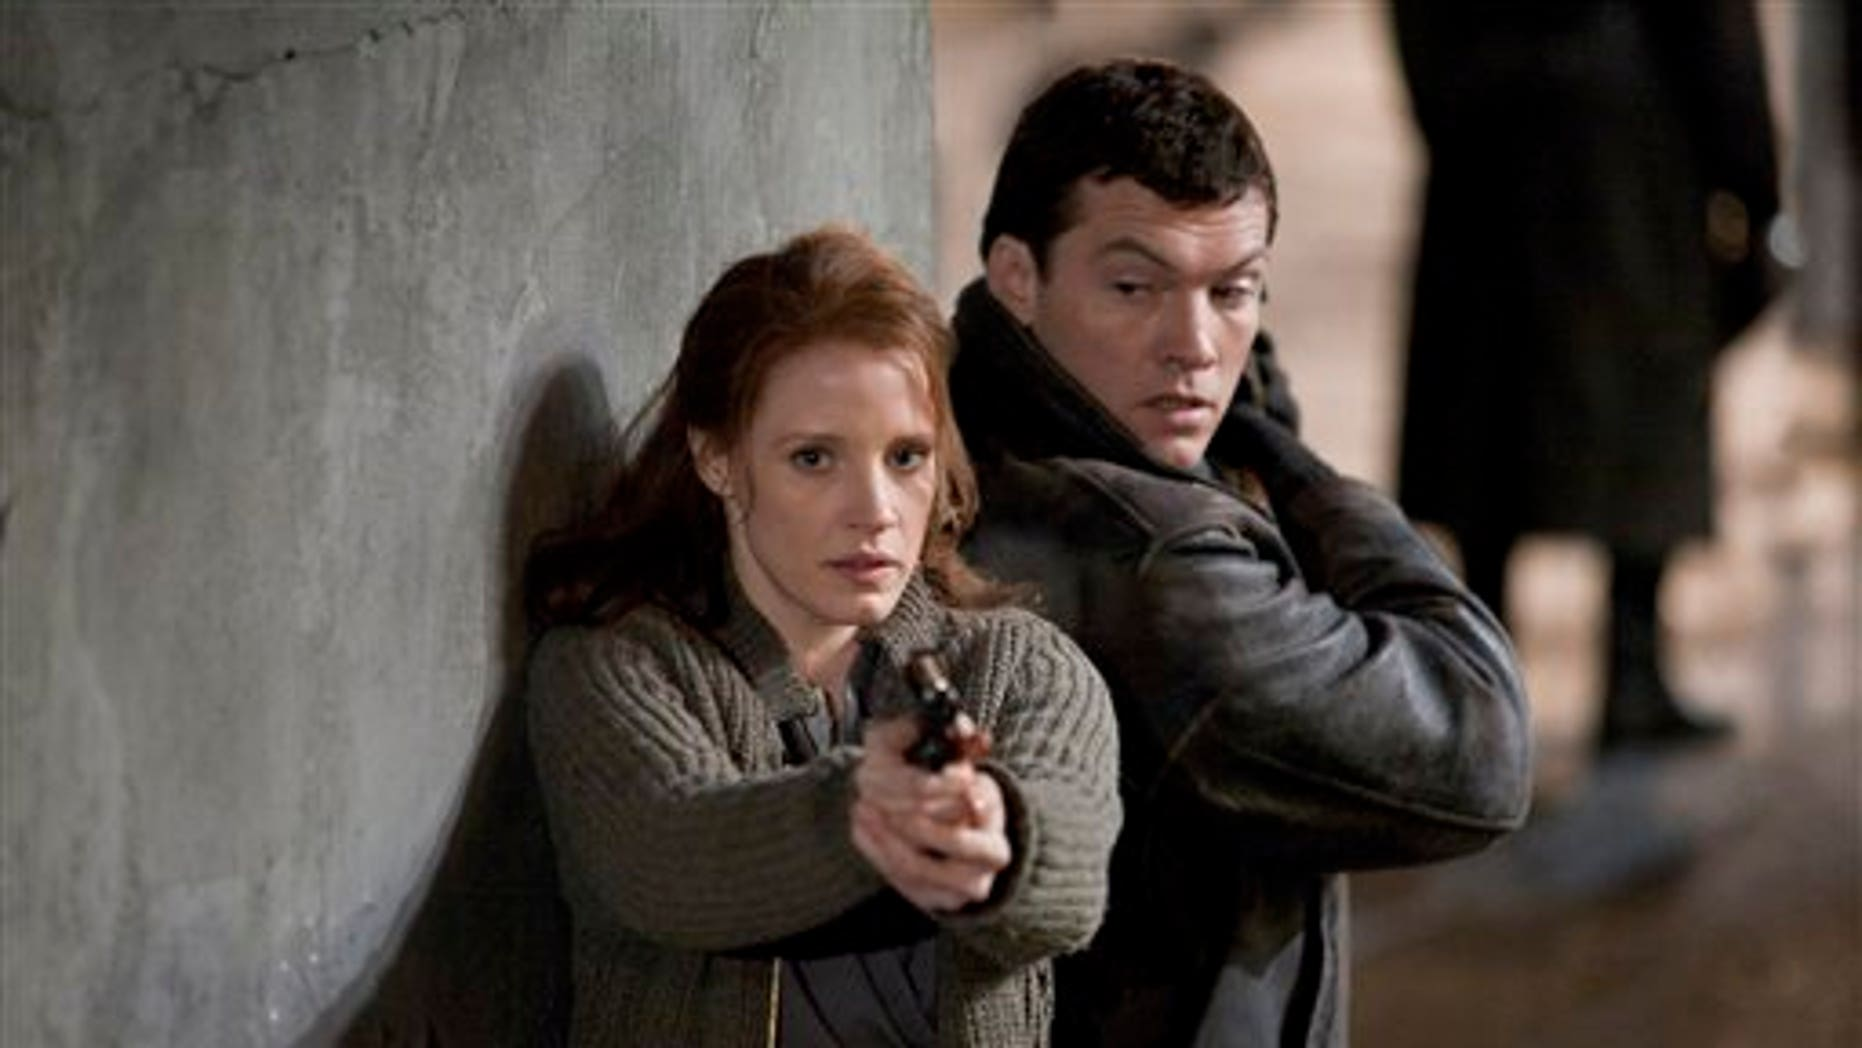 """In this film image released by Focus Features, Jessica Chastain, left, and Sam Worthington are shown in a scene from the espionage thriller """"The Debt."""" (AP)"""